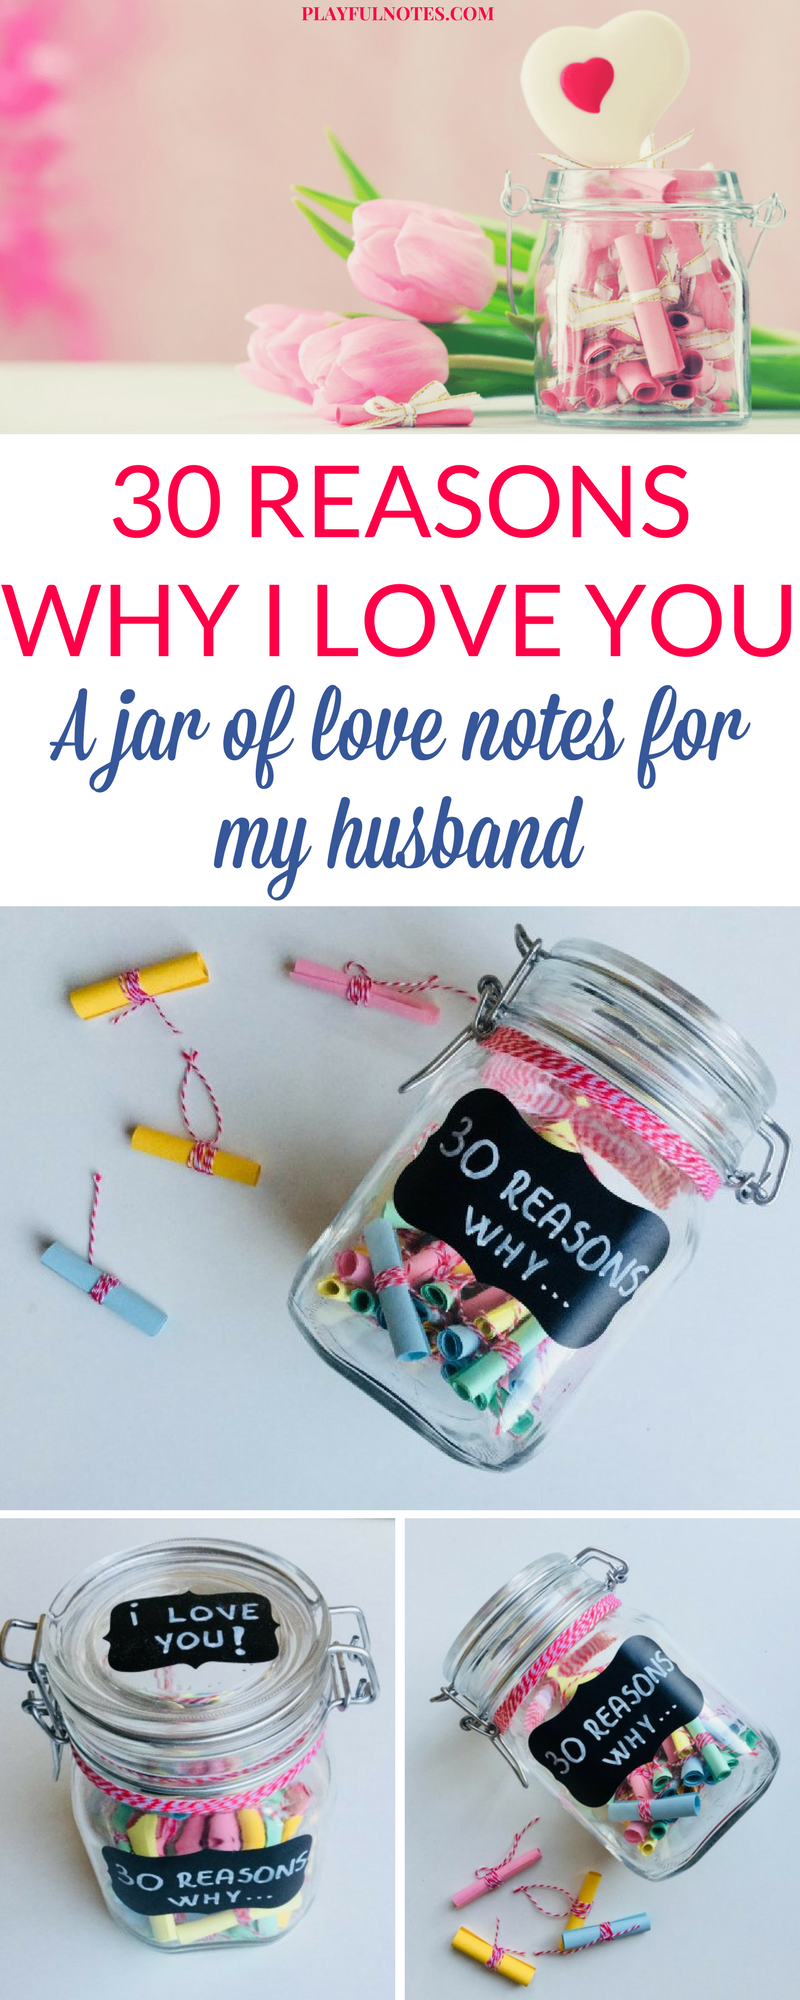 Creating A Jar Of Love Notes For My Husband Was A Nice Way To Show Him How Much I Love Him An Birthday Present For Husband Bday Gifts For Him Diy